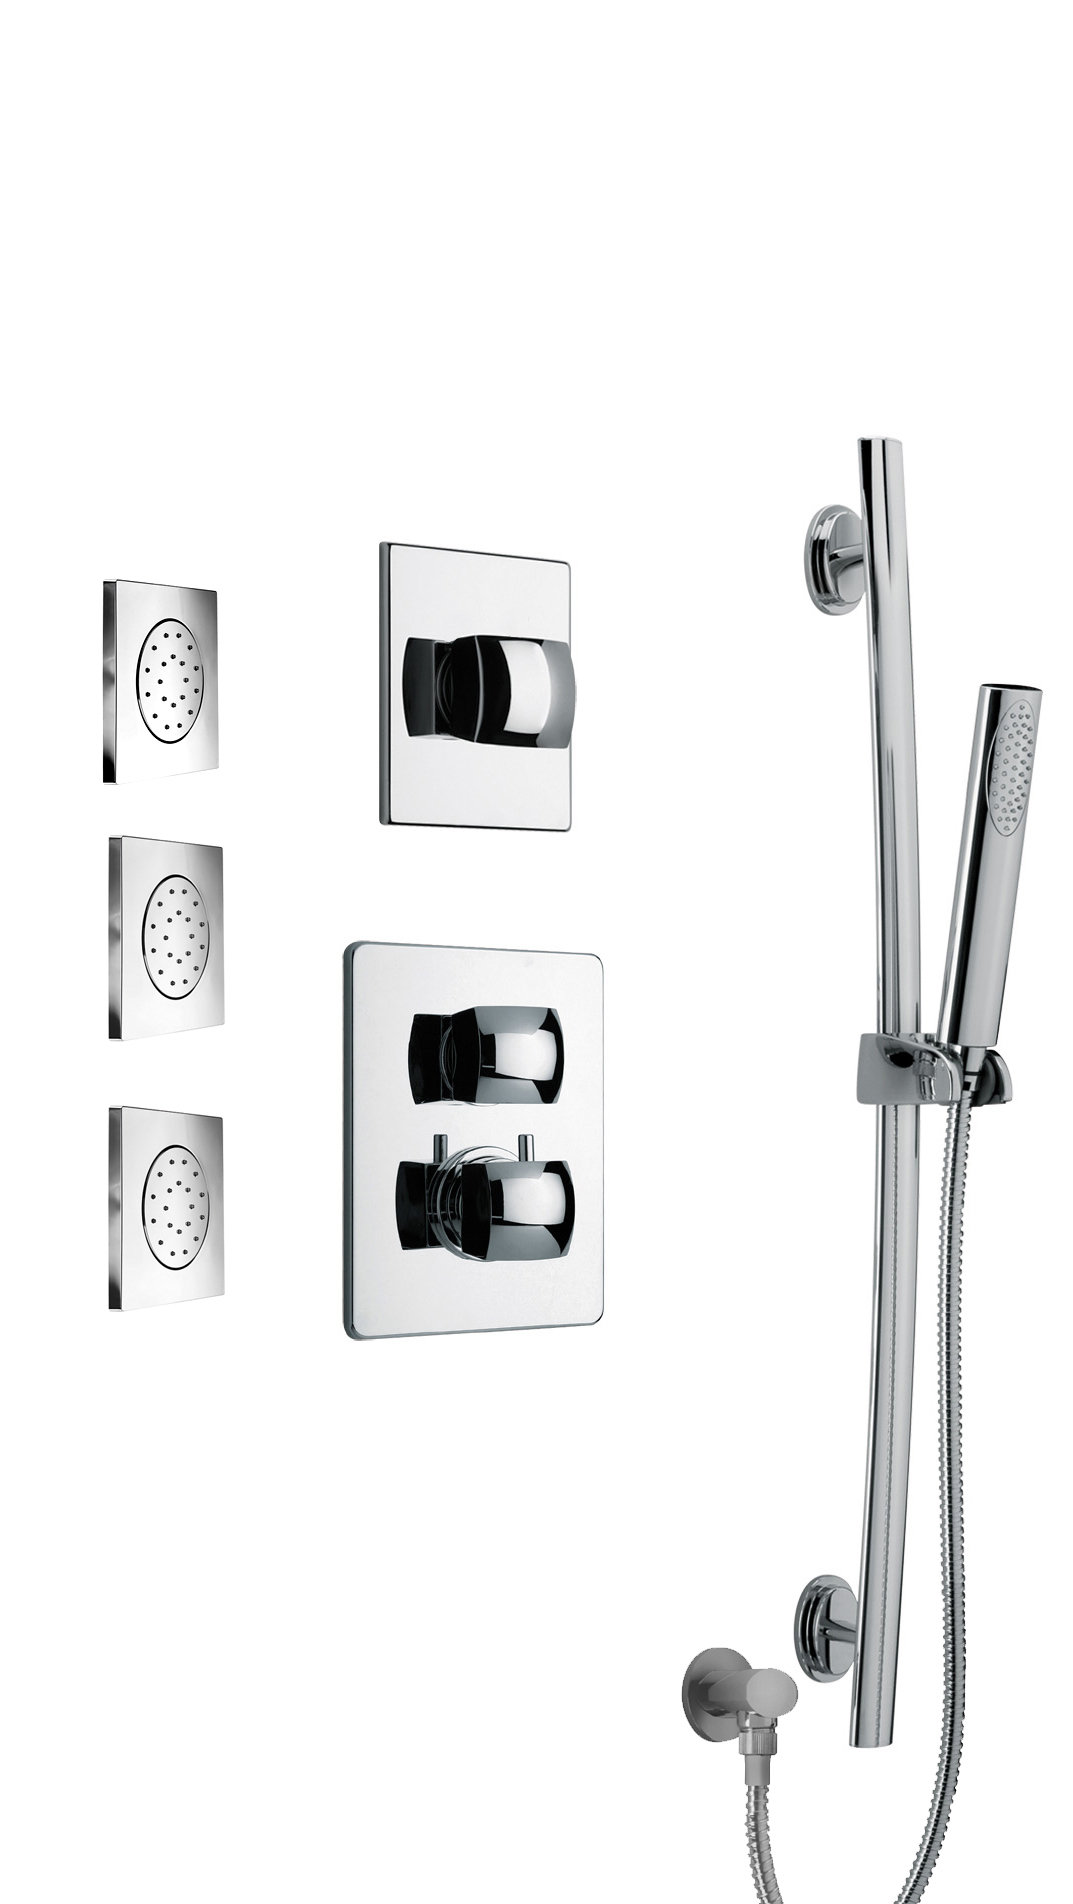 """Thermostatic Shower With 3/4"""" Ceramic Disc Volume Control, 3-Way Diverter, Slide Bar and 3 Concealed Body Jets in Chrome"""